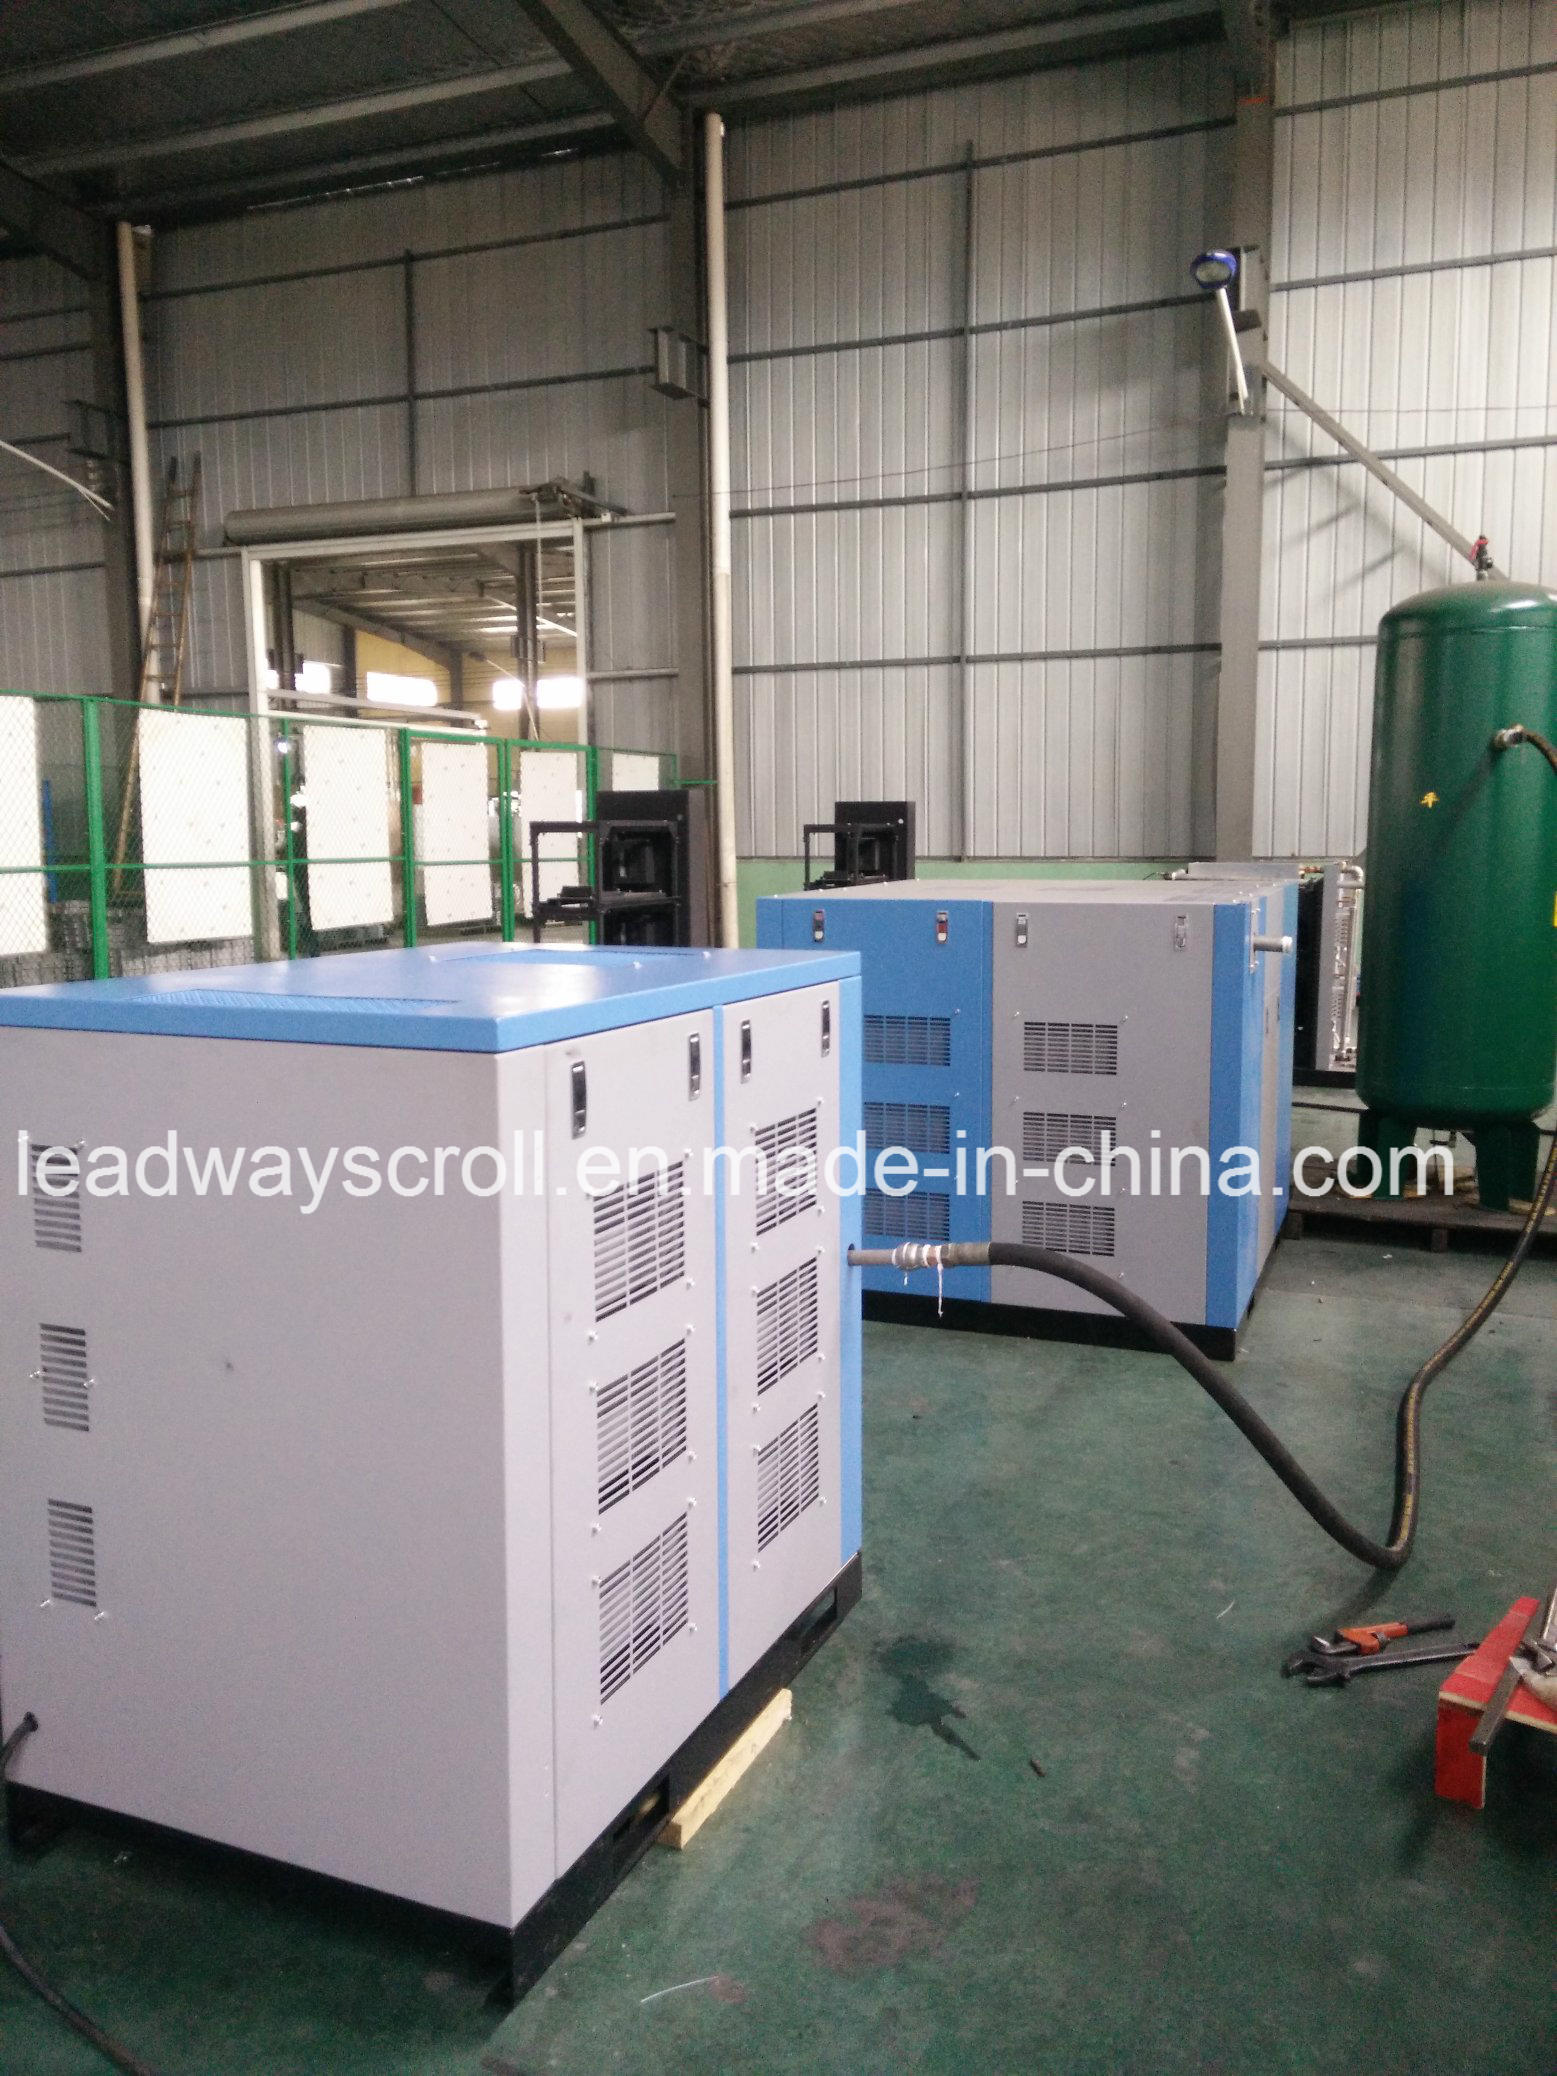 Oil Free Scroll Air Compressor for Food and Beverage Equipment